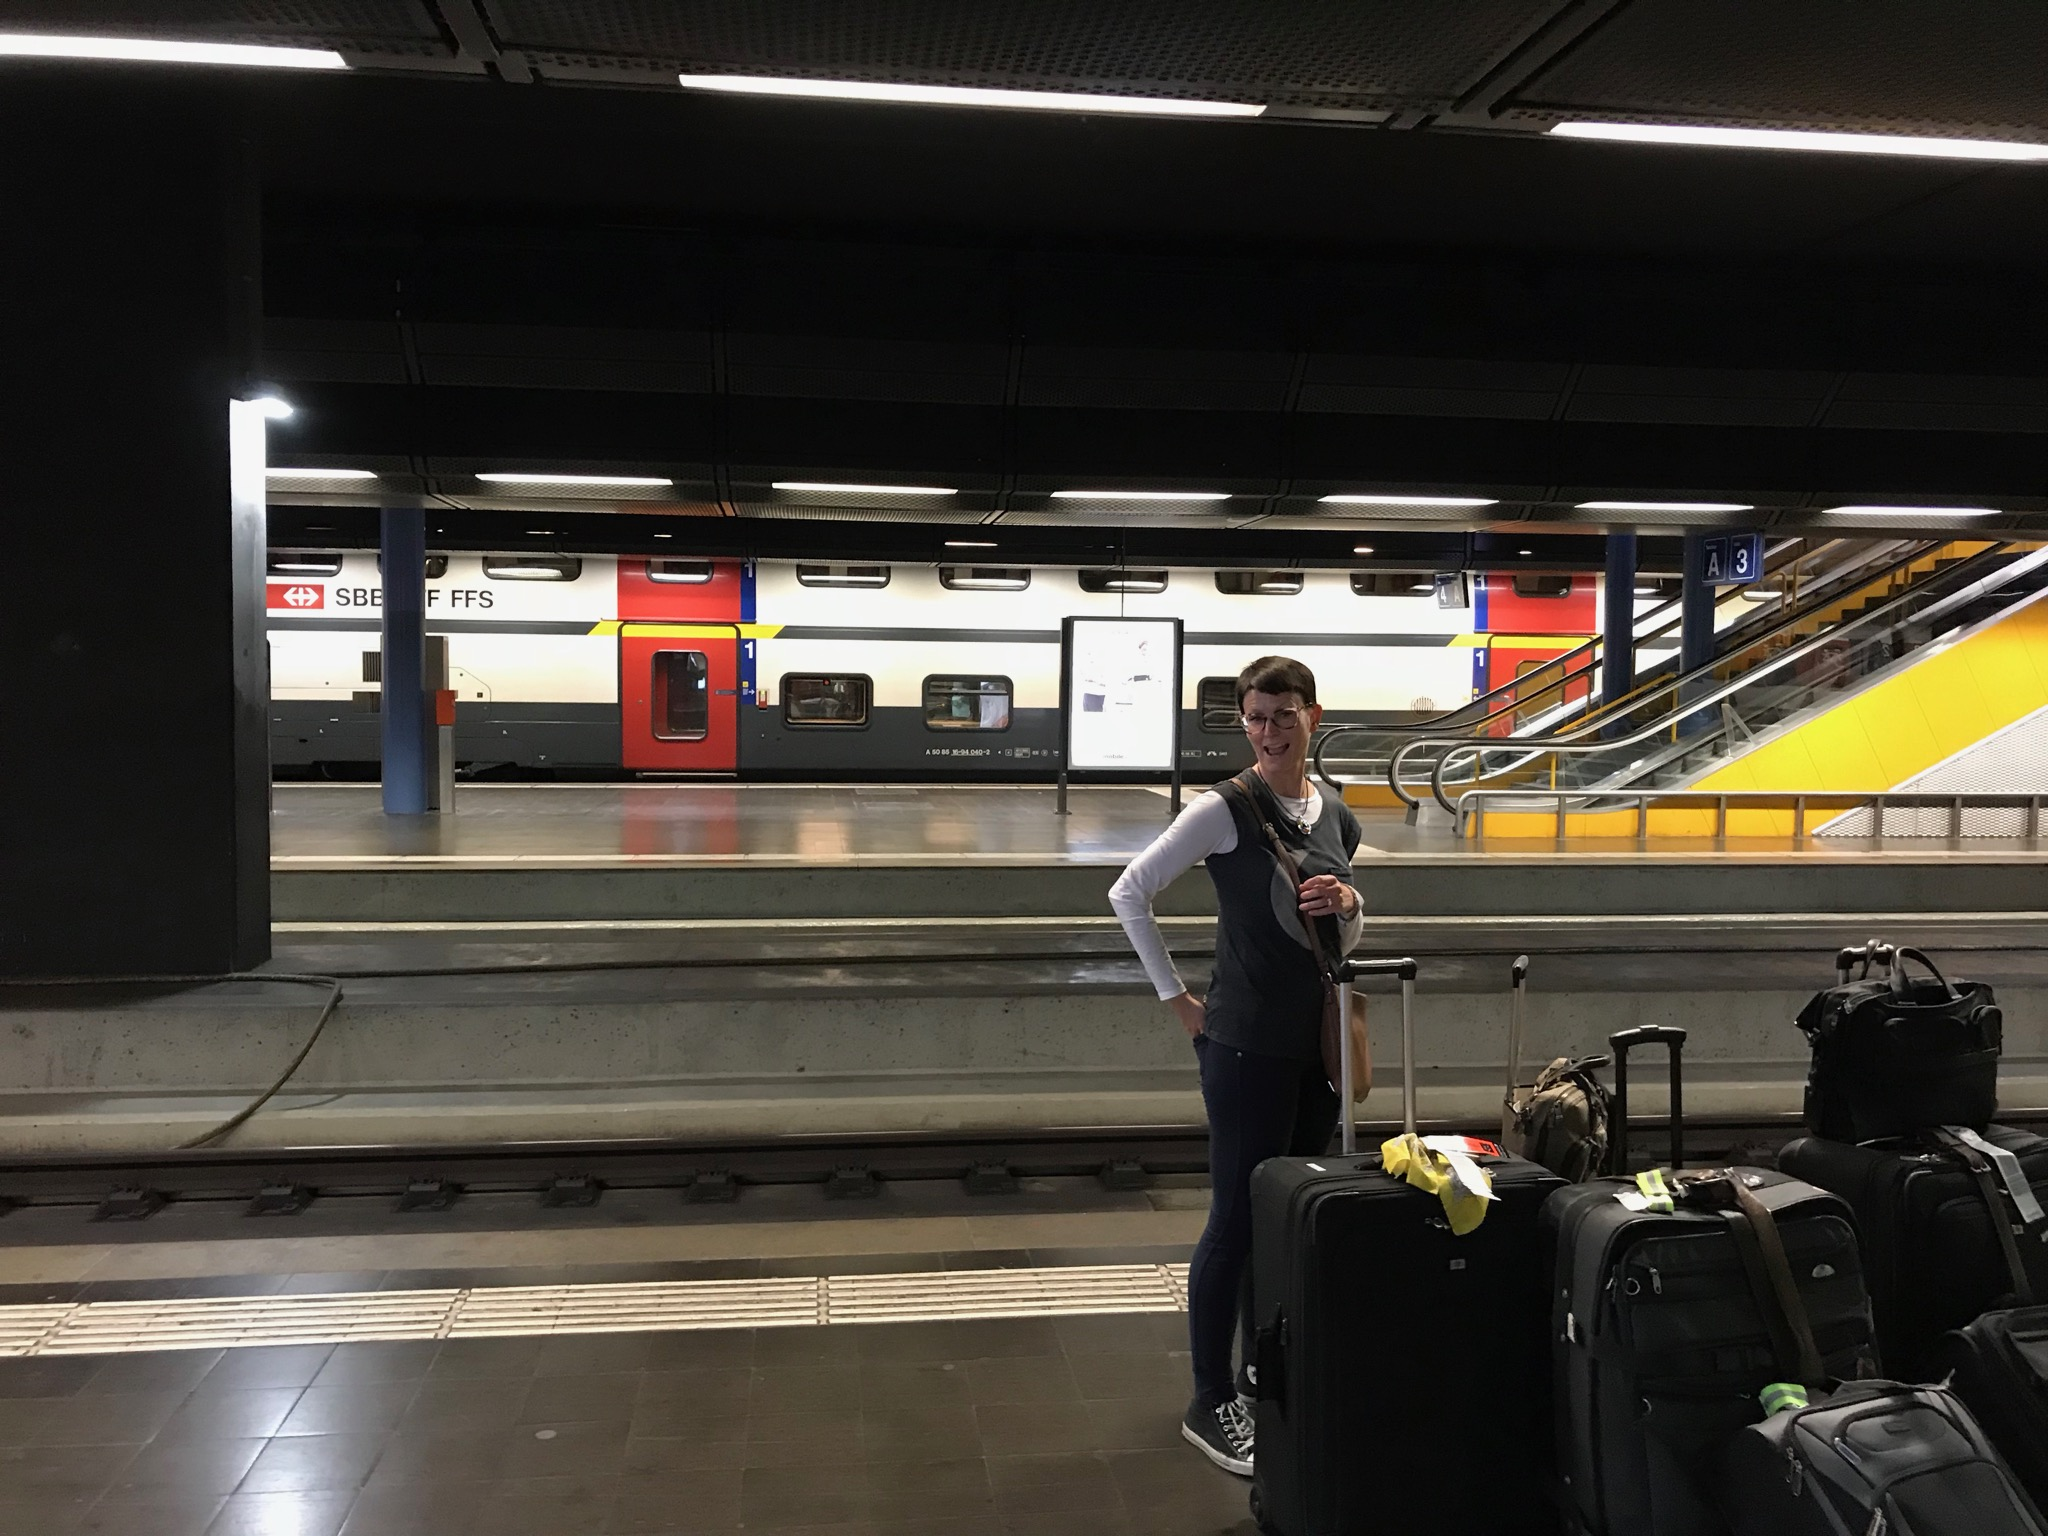 At the Geneva Airport train station with all our luggage, waiting for the train to Lausanne. August 25, 2018.